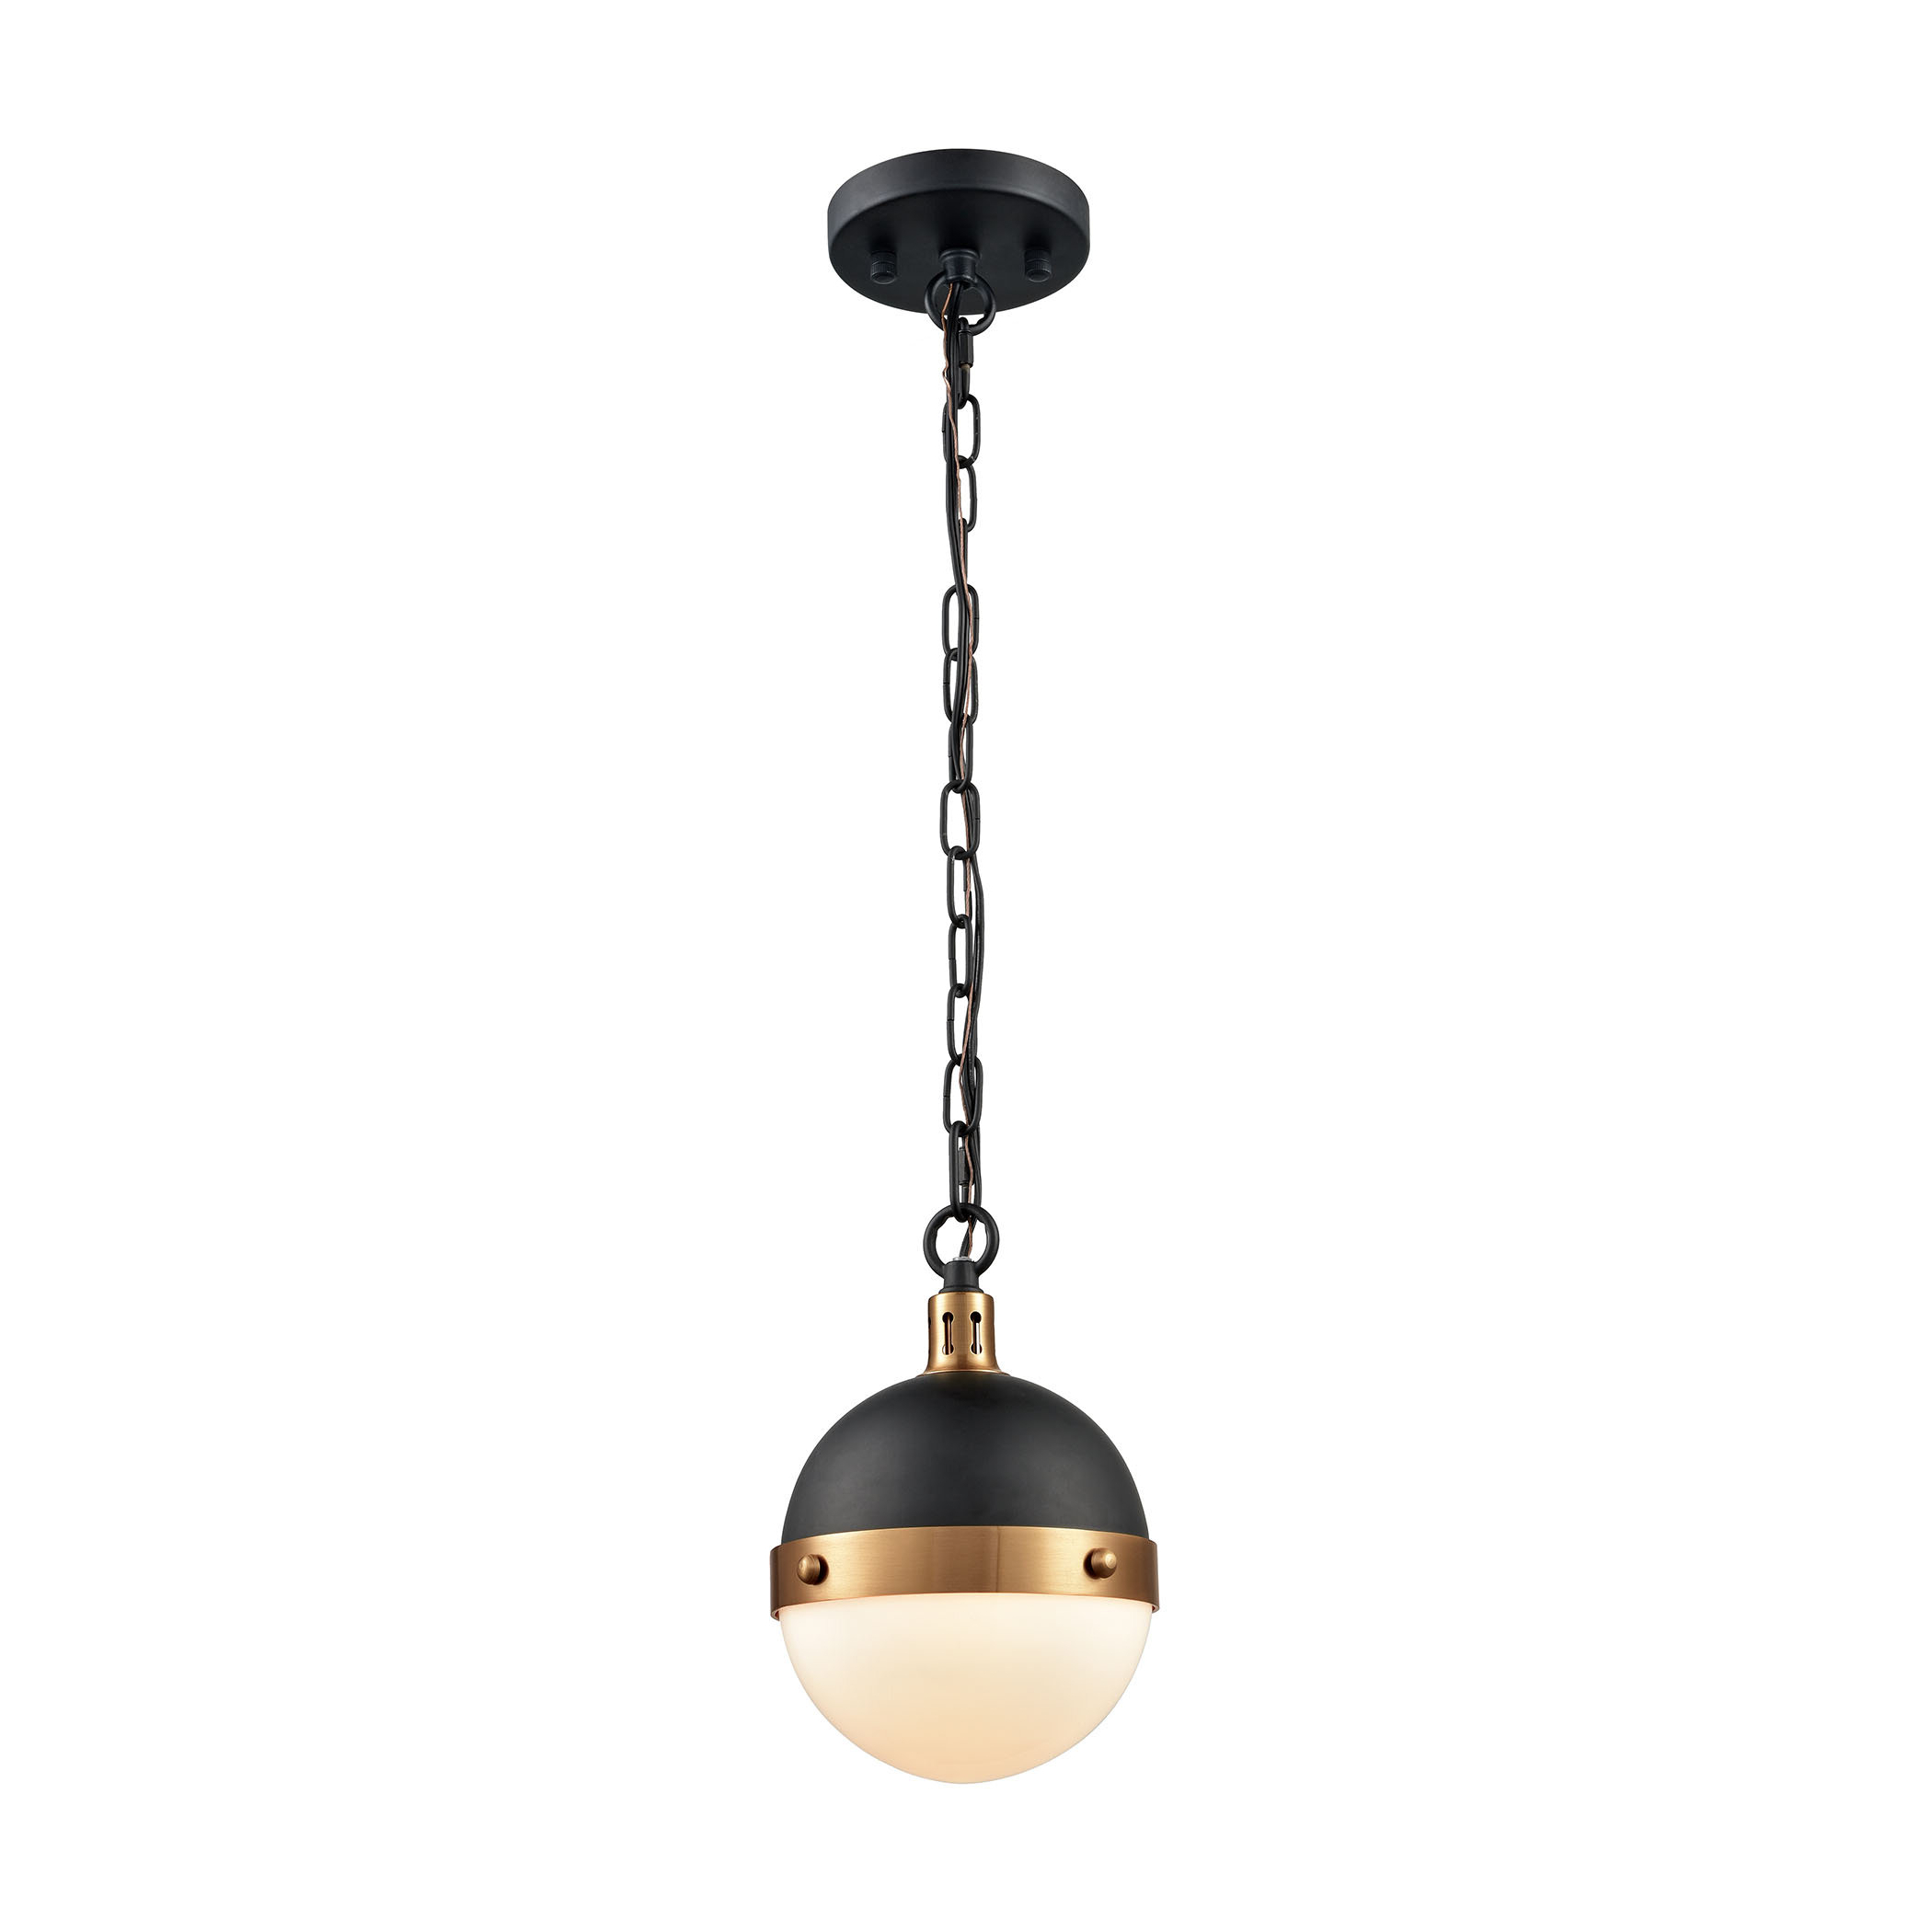 Fashionable Wein 1 Light Single Globe Pendant Throughout Prange 1 Light Single Globe Pendants (View 8 of 25)